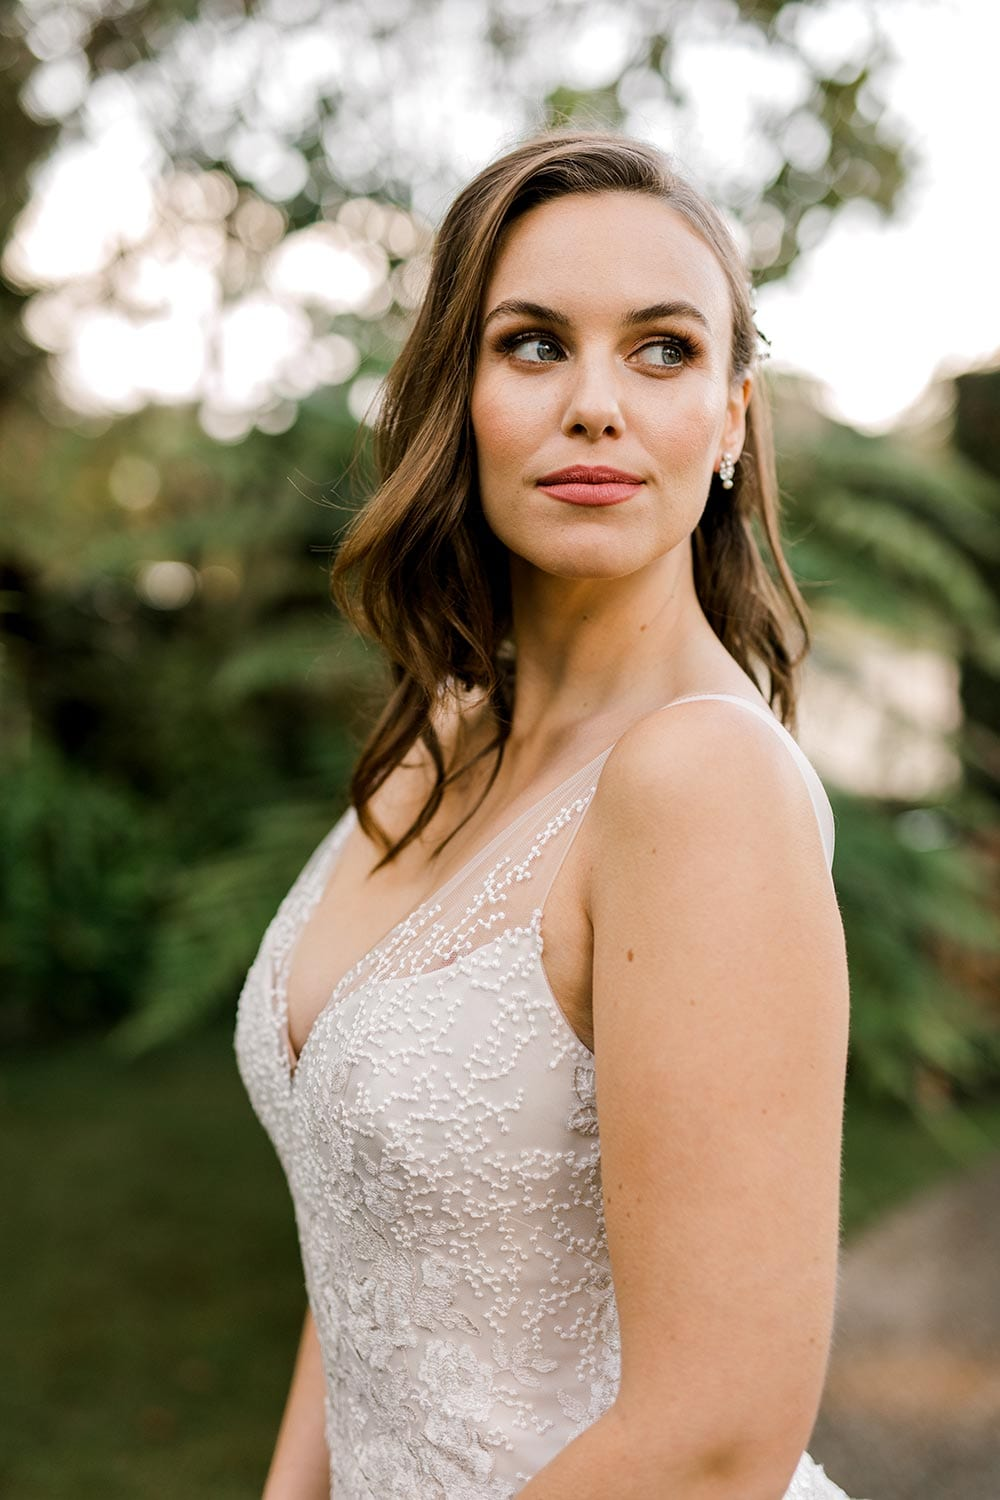 Hazel Wedding Dress from Vinka Design. Wedding dress with highly-sculptured bodice down to the hipline, at which point it gently flares into a beautiful and dreamy tulle skirt and train. Beautiful and delicate embroidery. Bodice detail from the side.